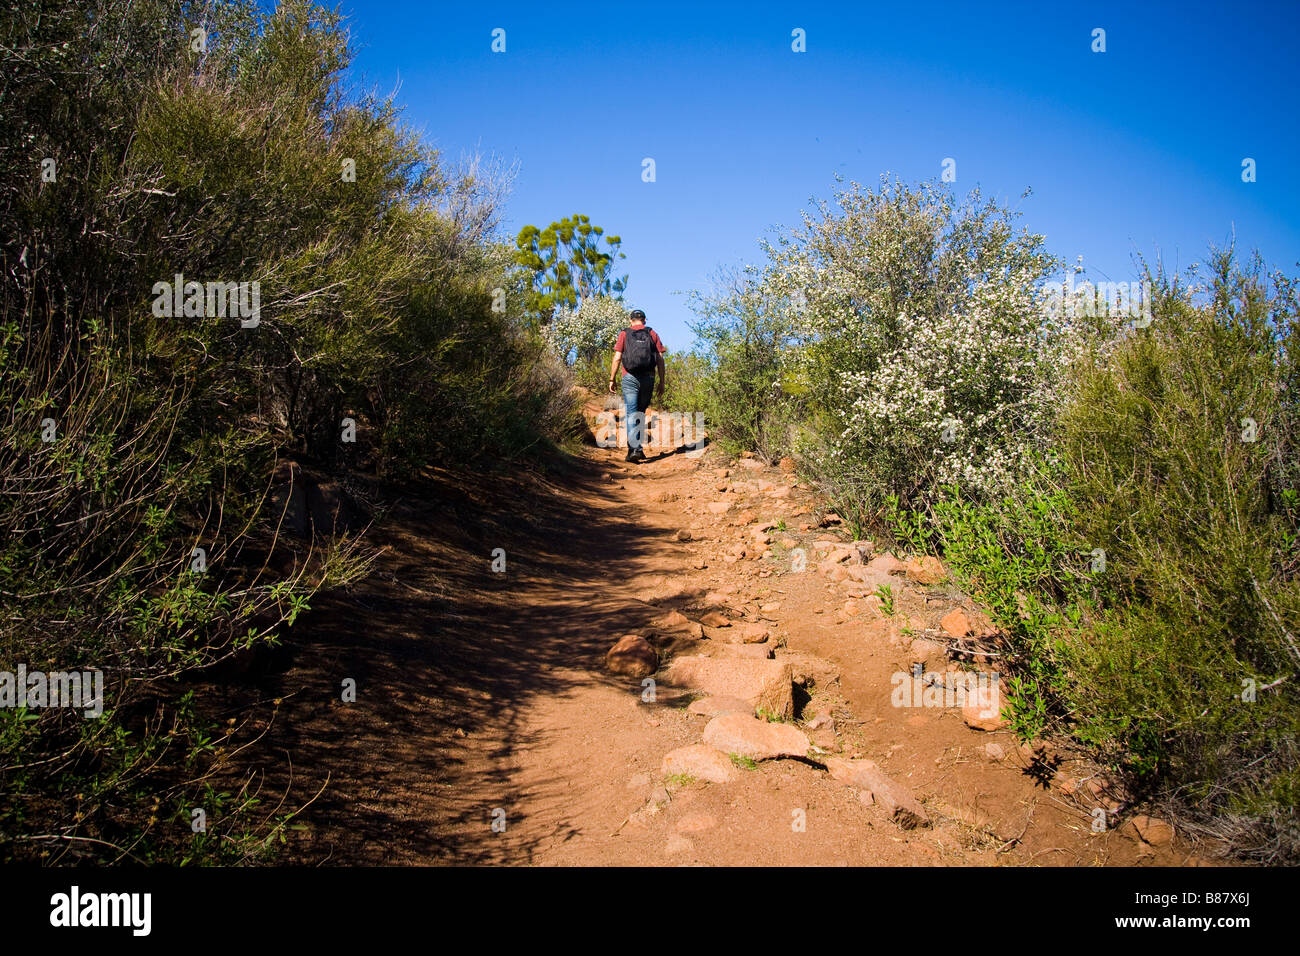 Hiker on the mishe mokwa and backbone trail Santa Monica mountains hiking - Stock Image